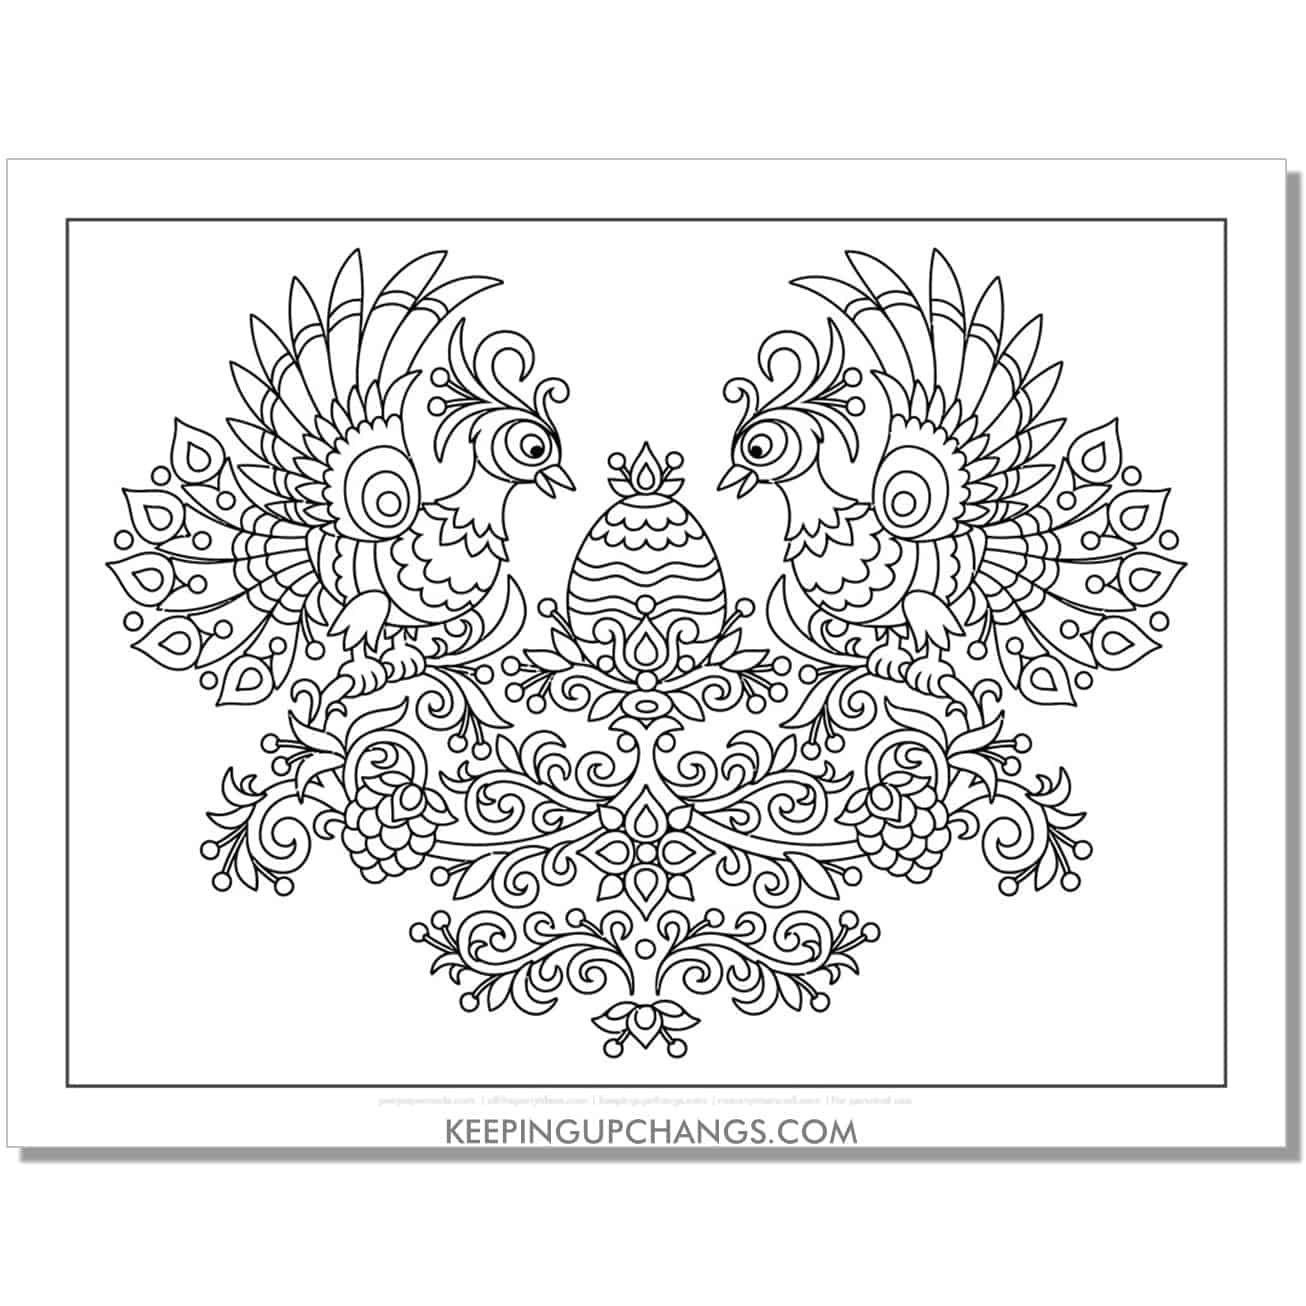 almost full size peacock coloring page for stress relief.